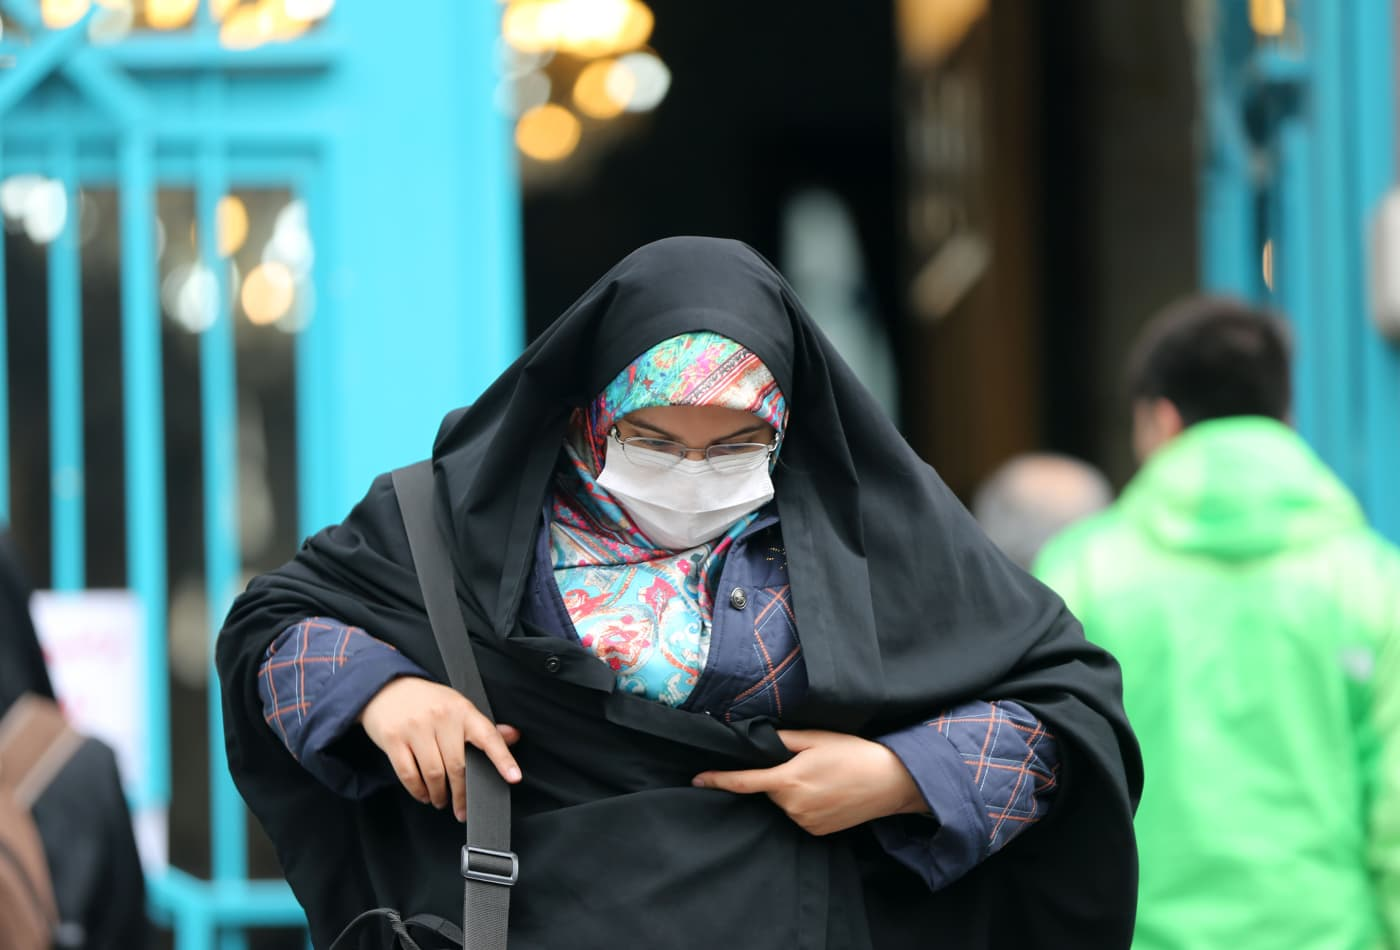 WHO says coronavirus entered Iran 'undetected,' warns outbreak could be worse than is known